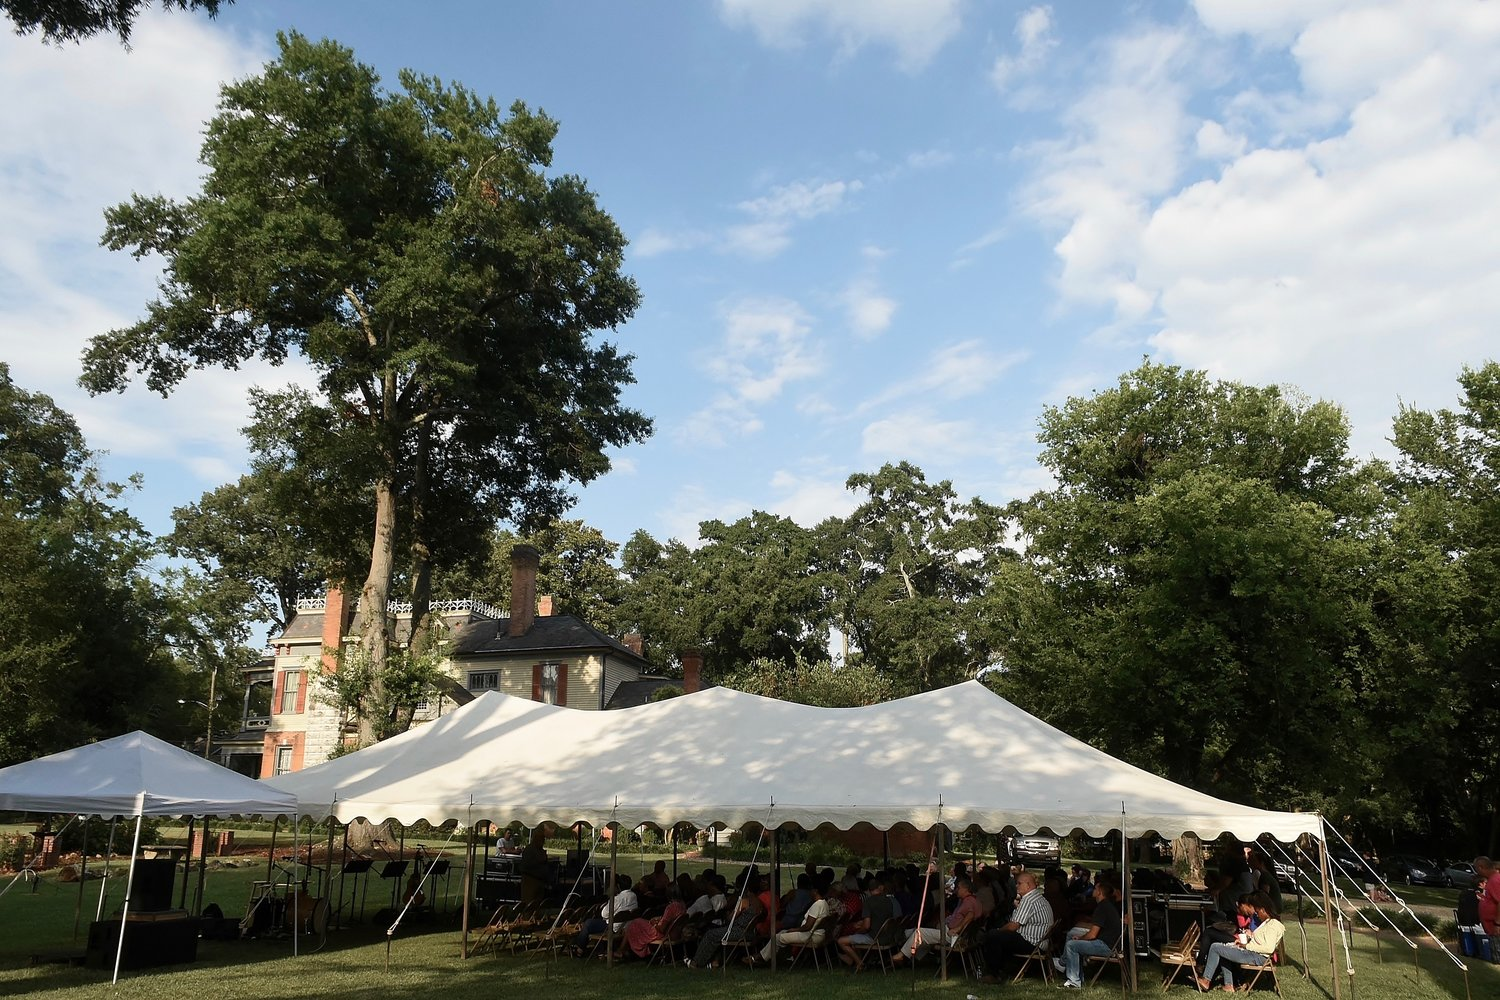 More than 200 people from over 12 different churches attended Anchor Ministries' Interfaith Gathering on the grounds of Rose Lawn Museum July 28.